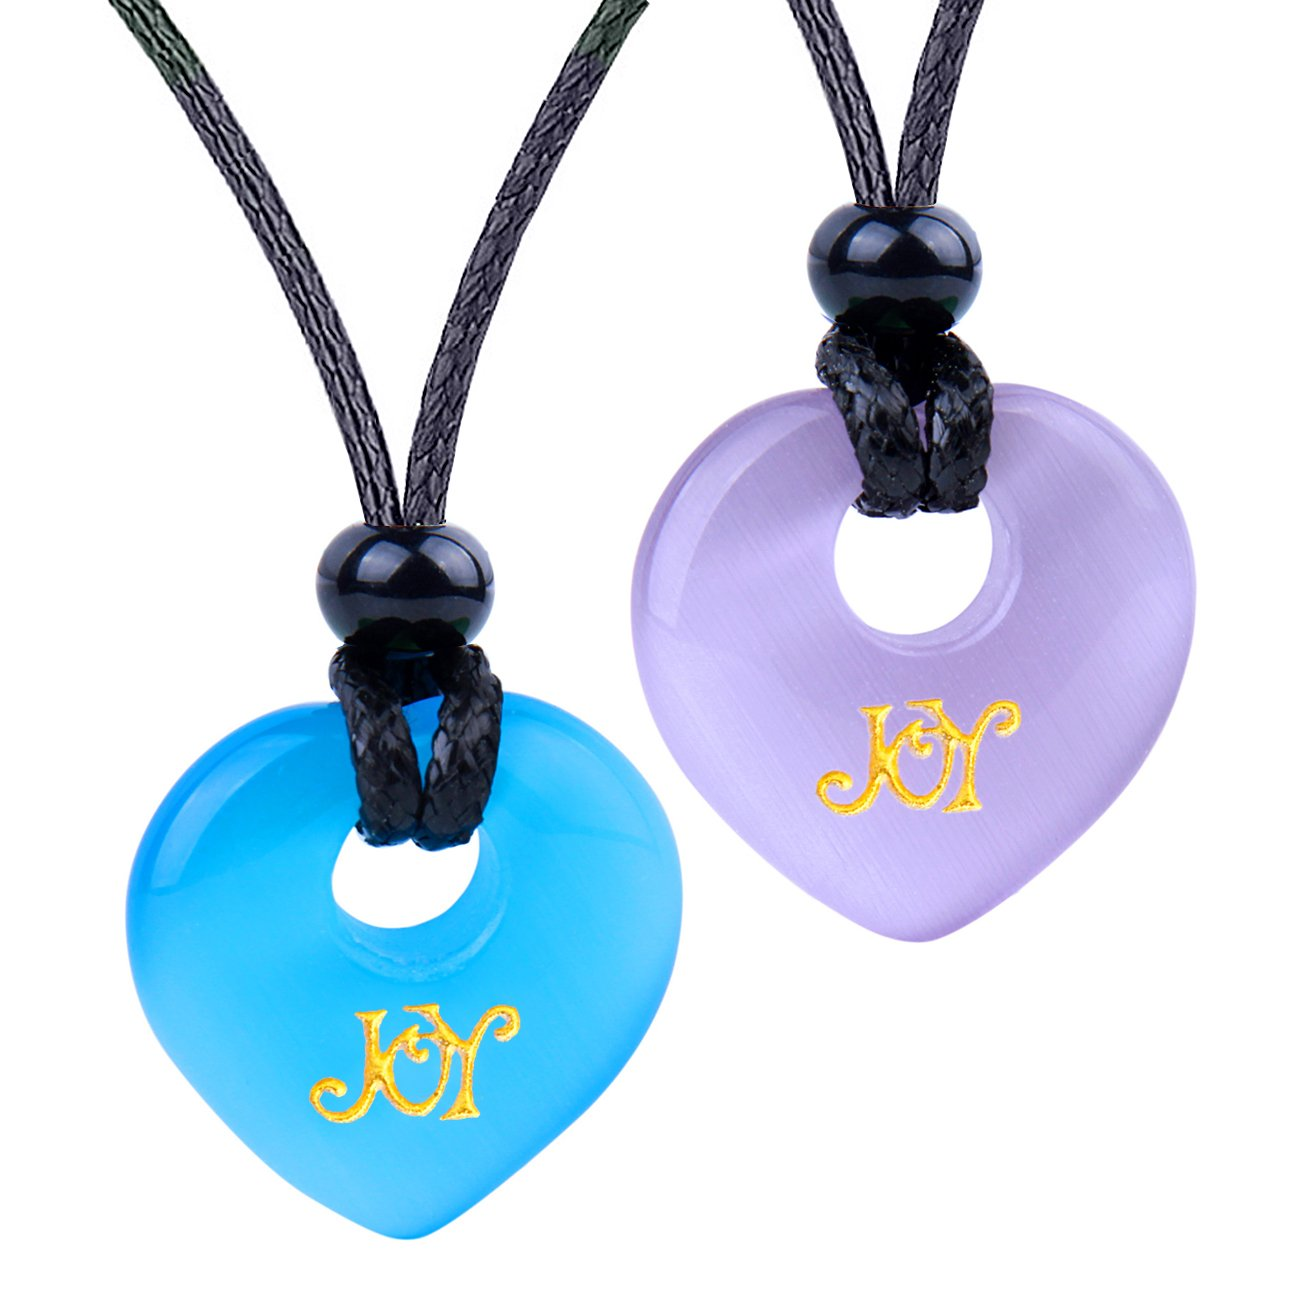 Inspirational Heart Donut Amulets Joy and Love Powers Couples BFF Purple Blue Simulated Cat Eye Necklaces